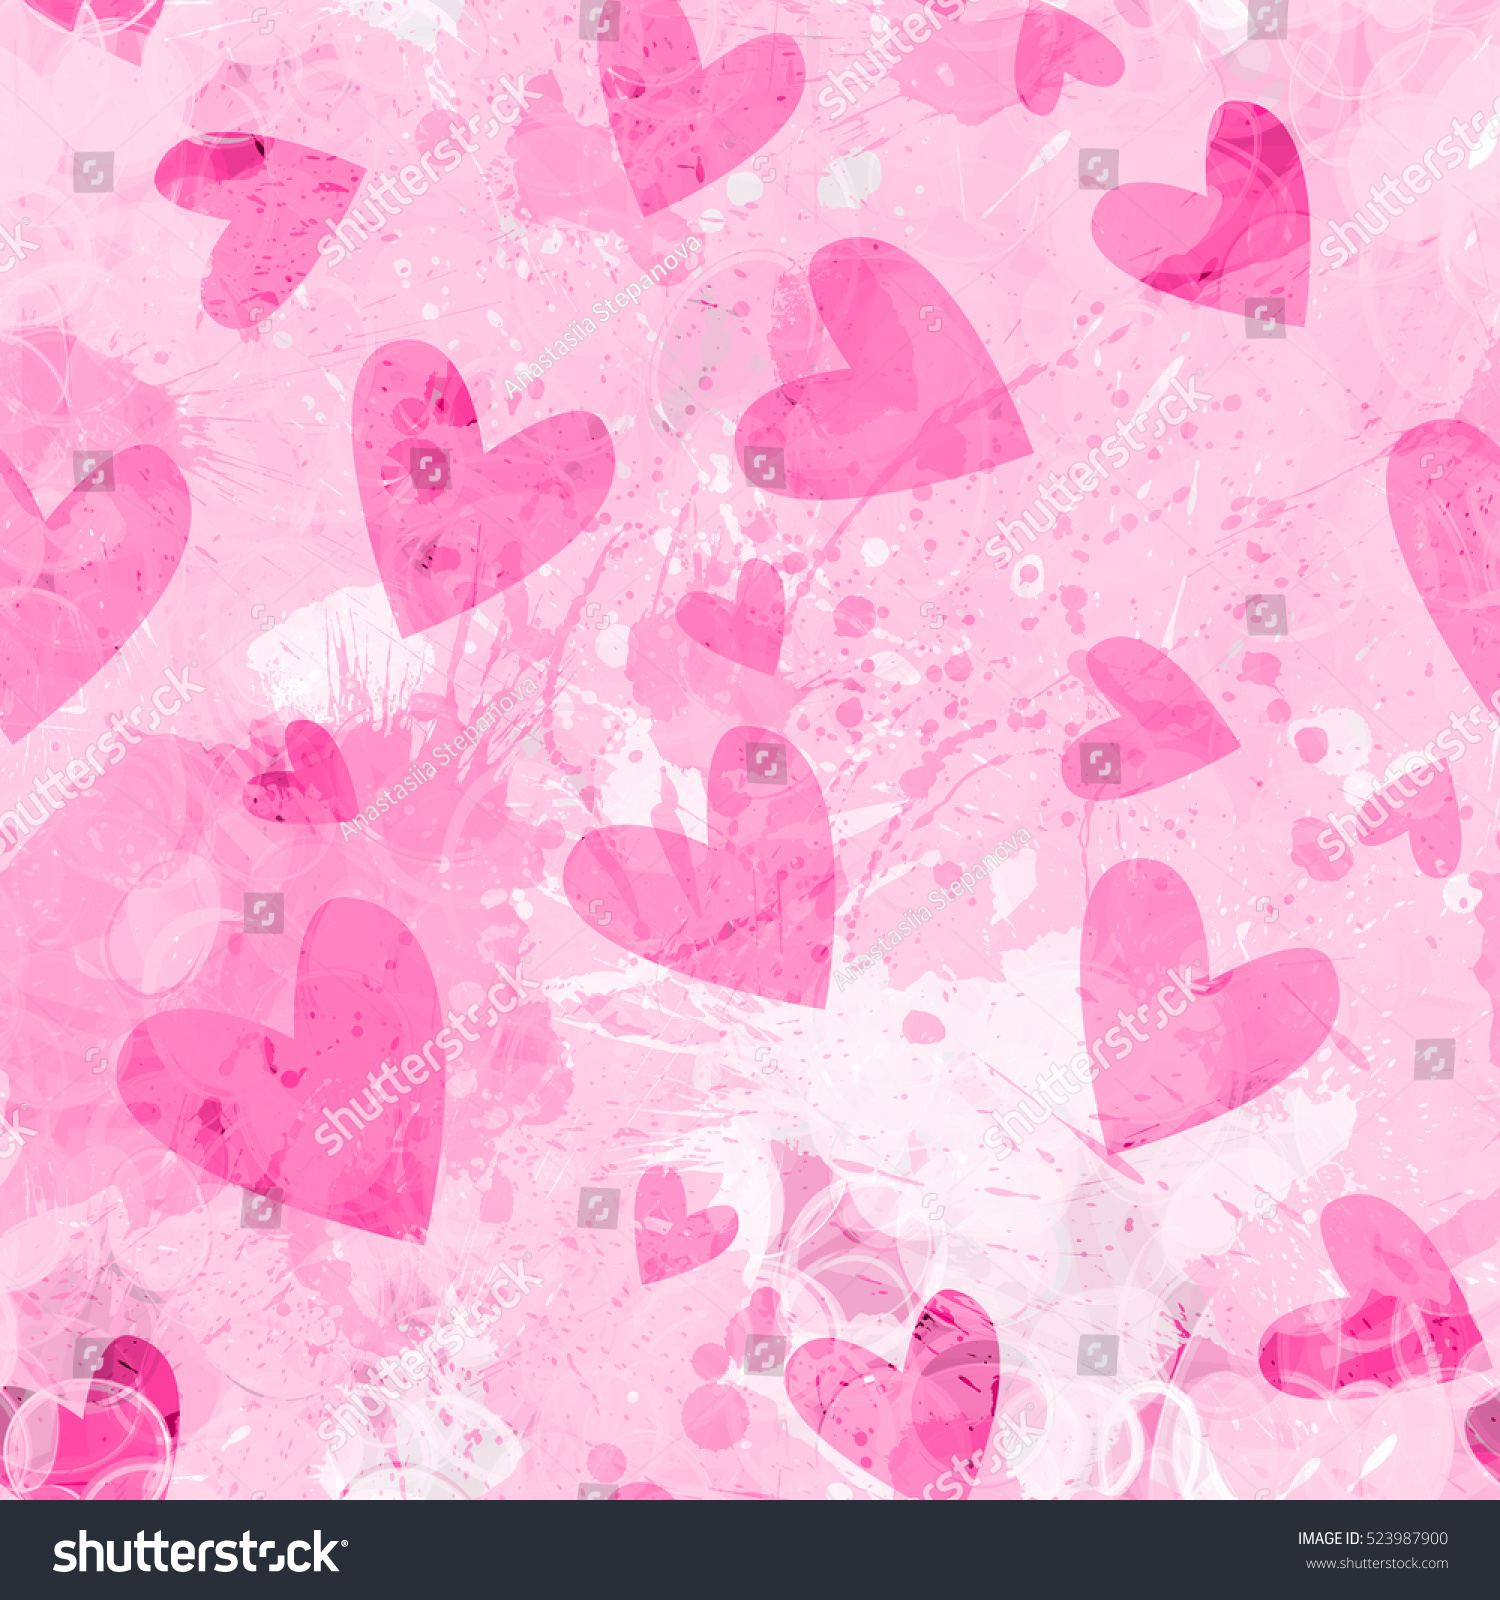 Valentines Day Hearts Pink Vector Design Stock Vector Royalty Free 523987900